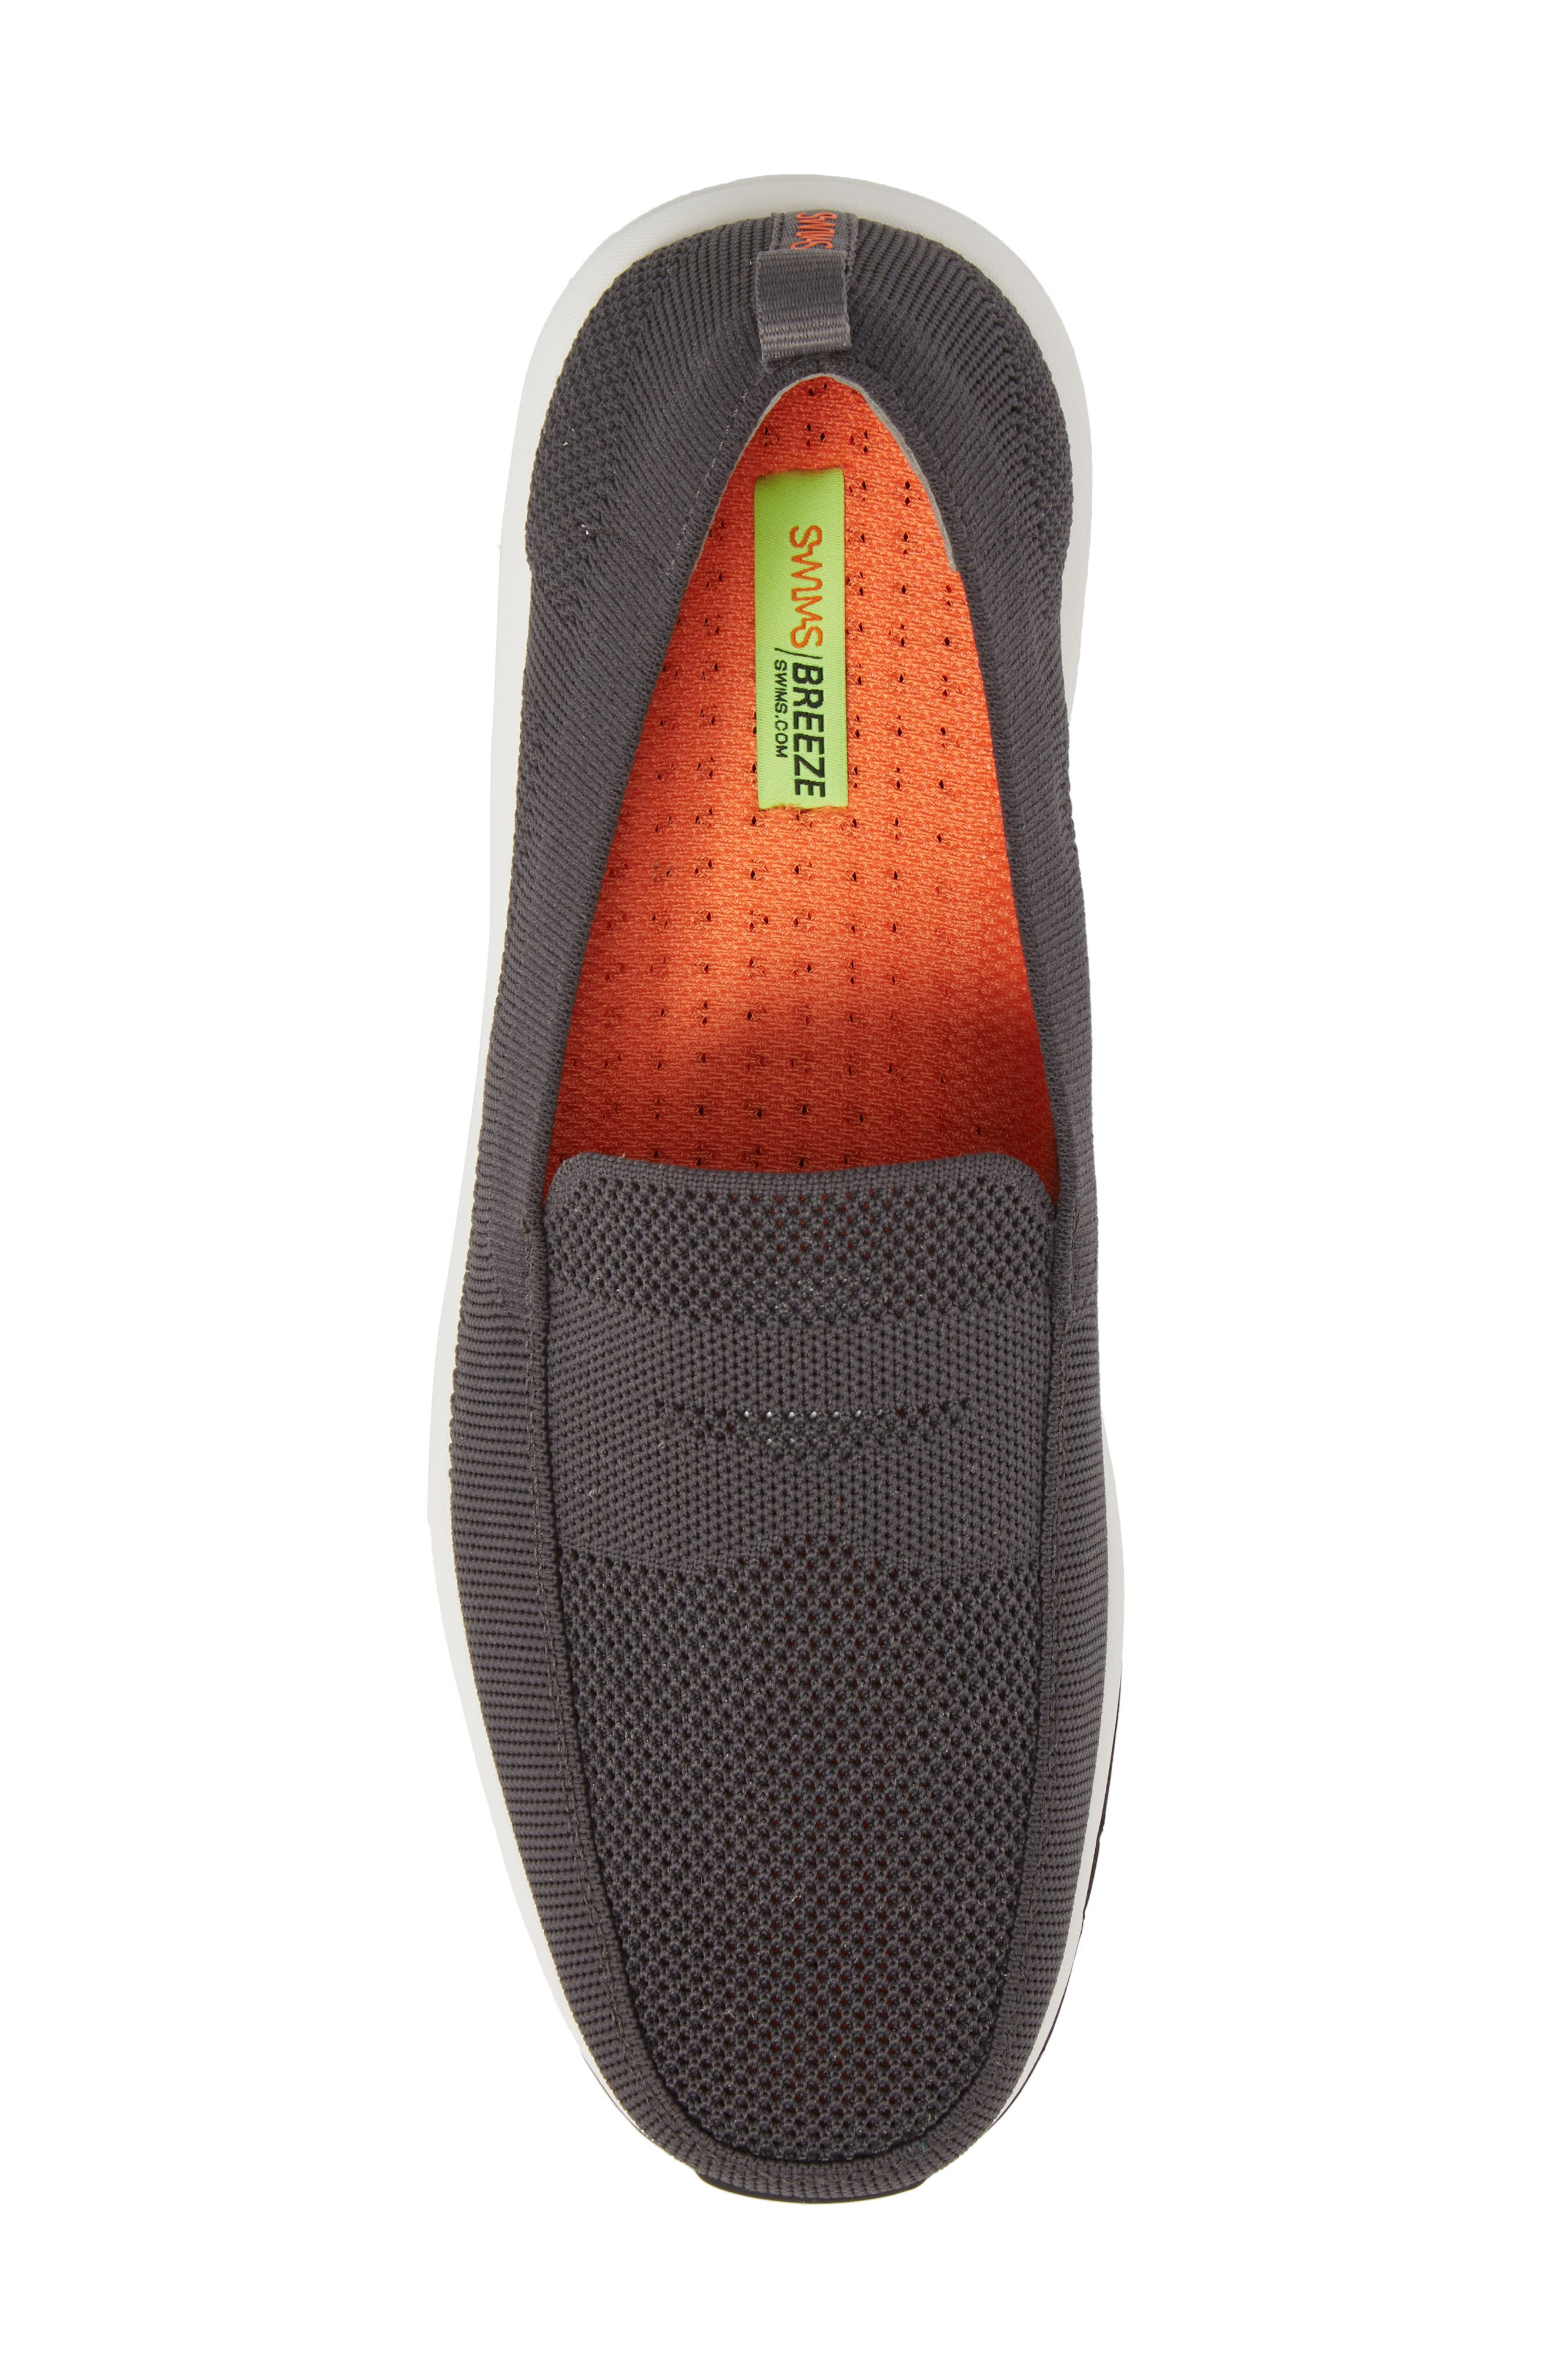 SWIMS,                             Breeze Leap Knit Penny Slip-On,                             Alternate thumbnail 5, color,                             020